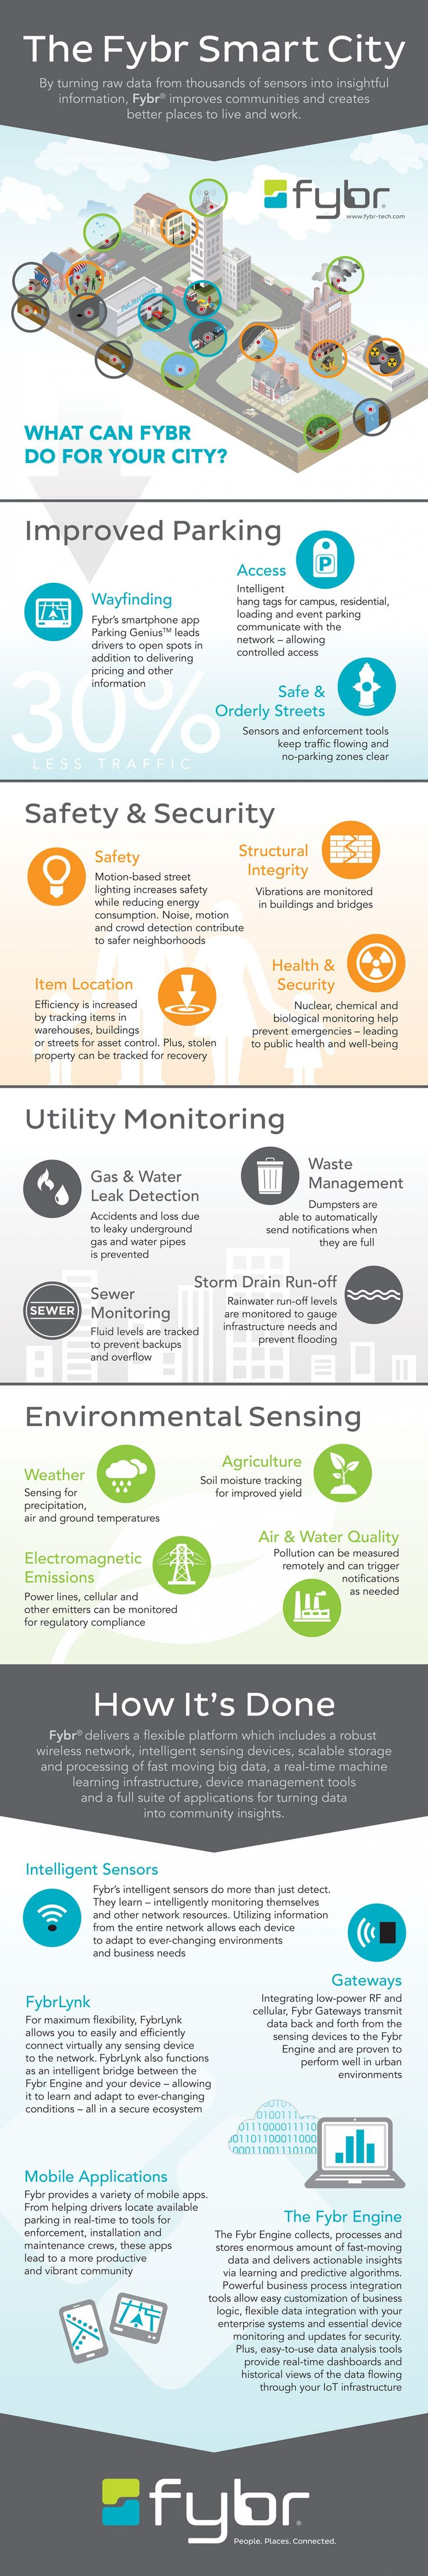 The Fybr Smart City Infographic